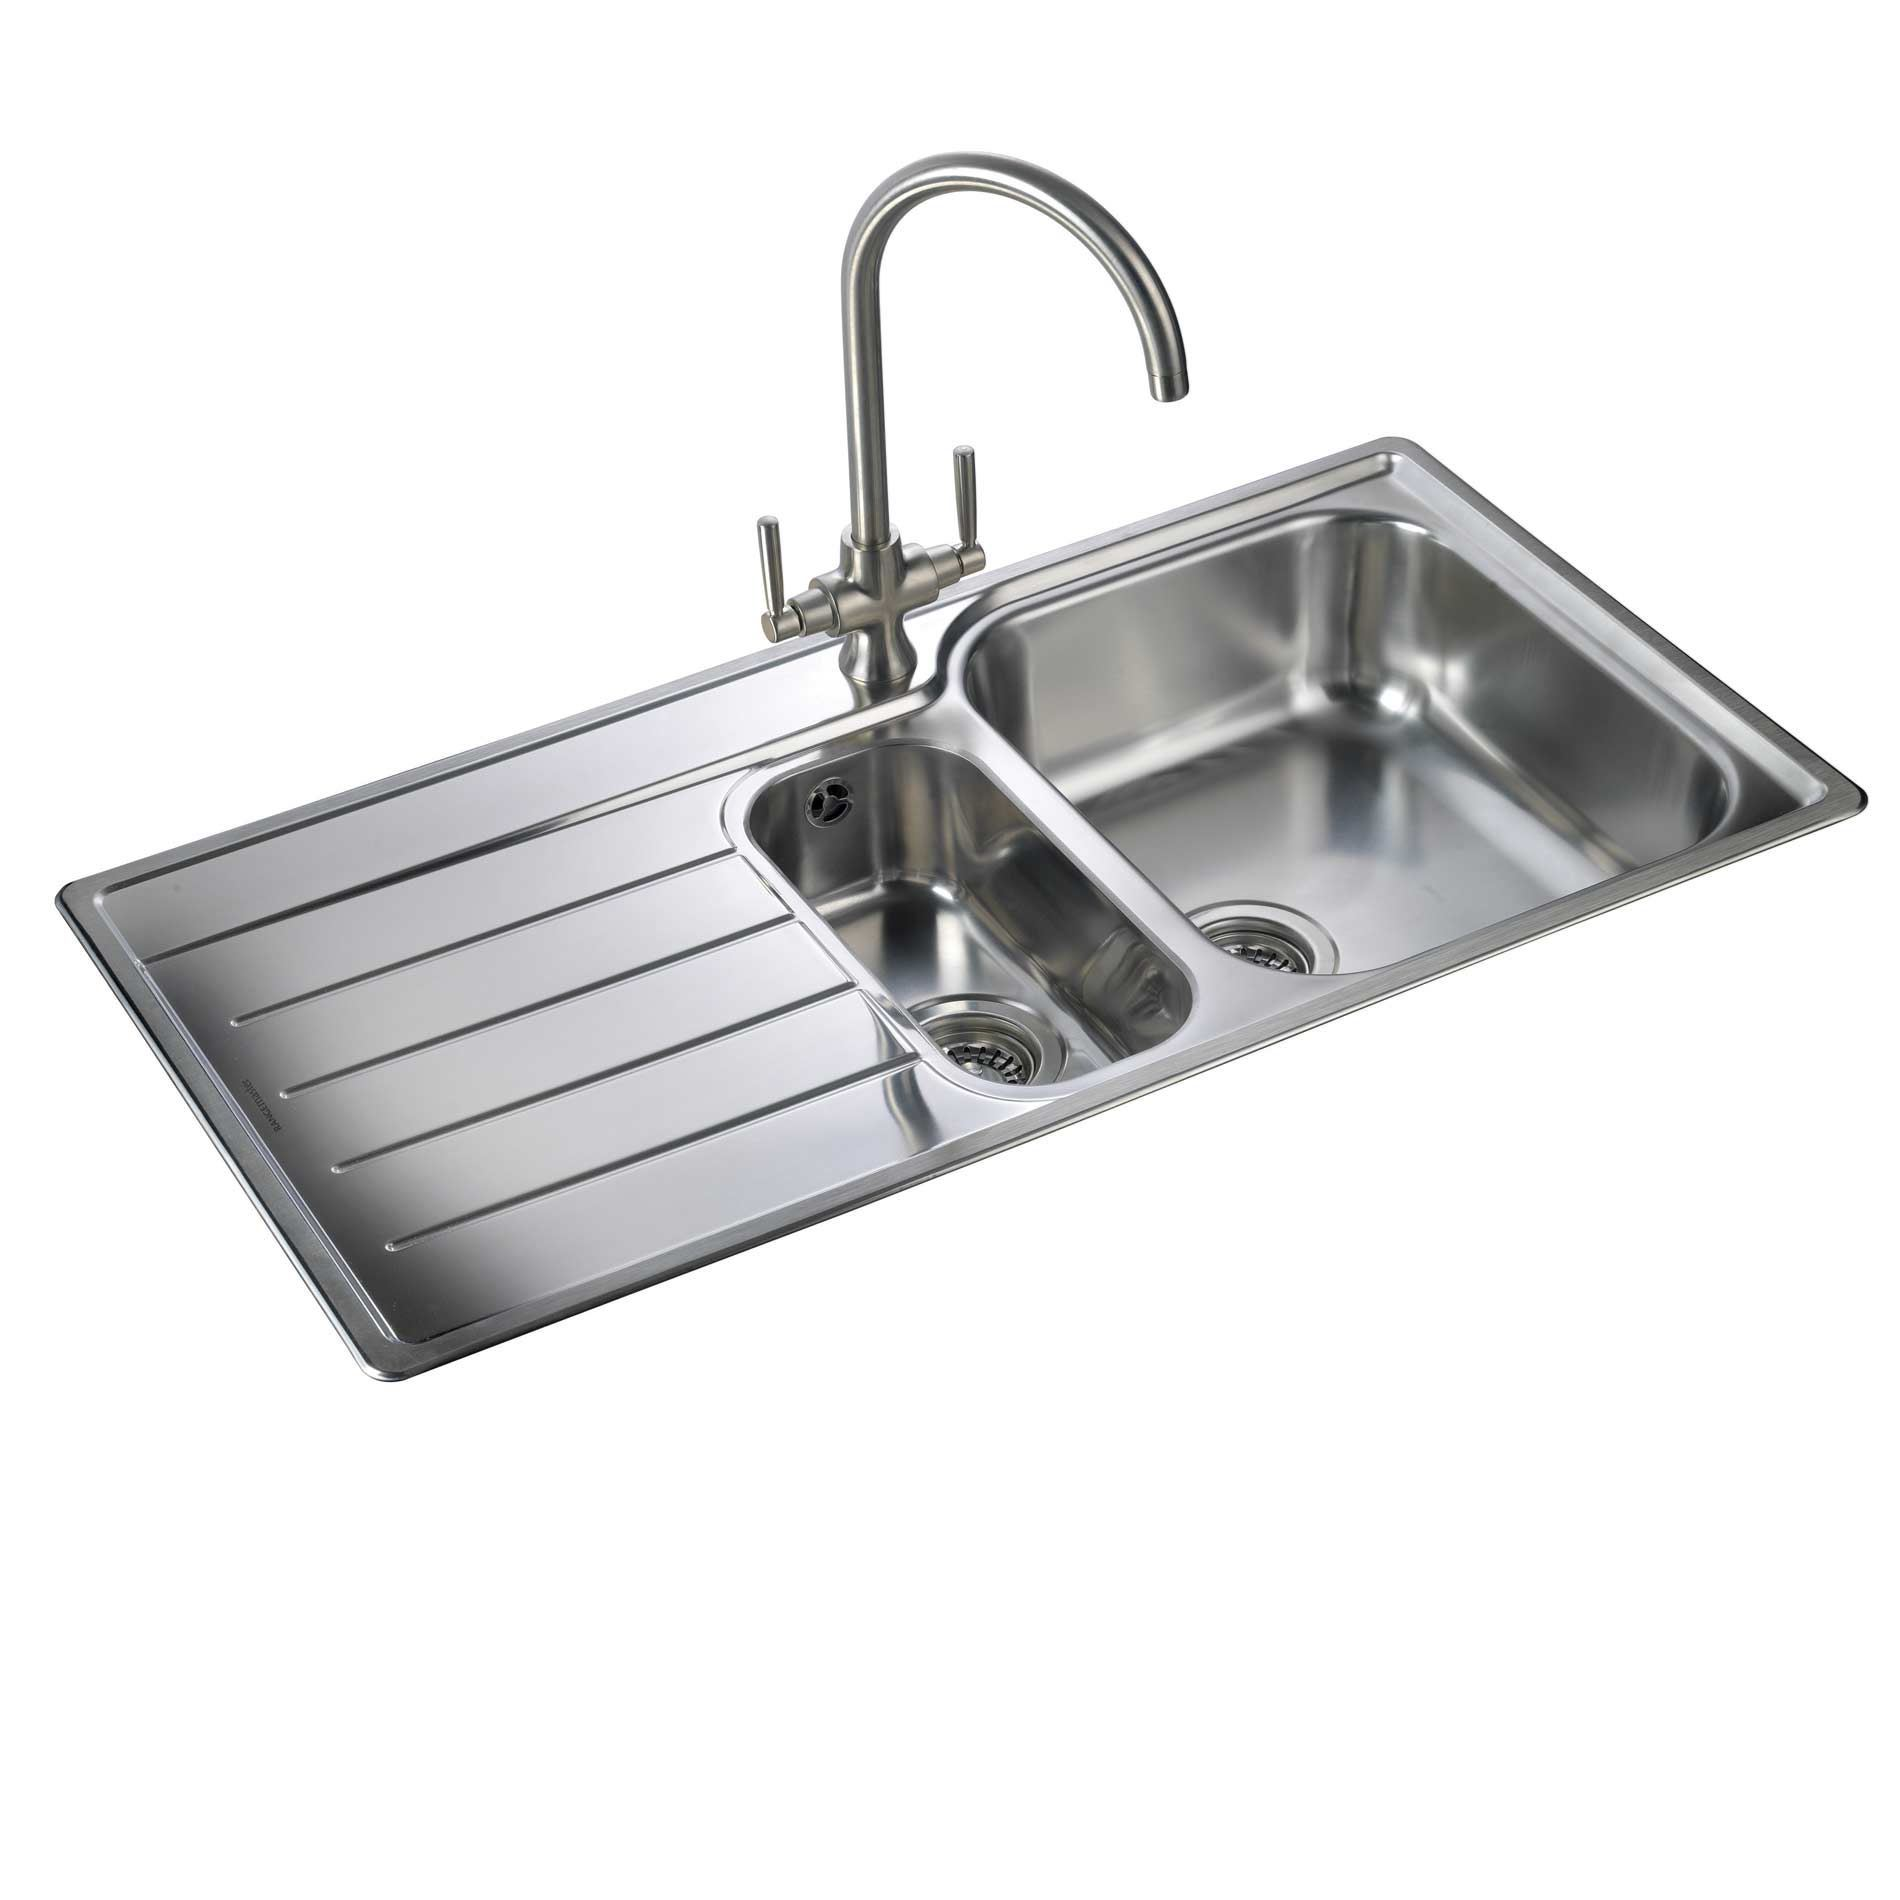 Kitchen Design Pictures Kitchen Sinks Amp Taps Rangemaster Oakland Ol9852